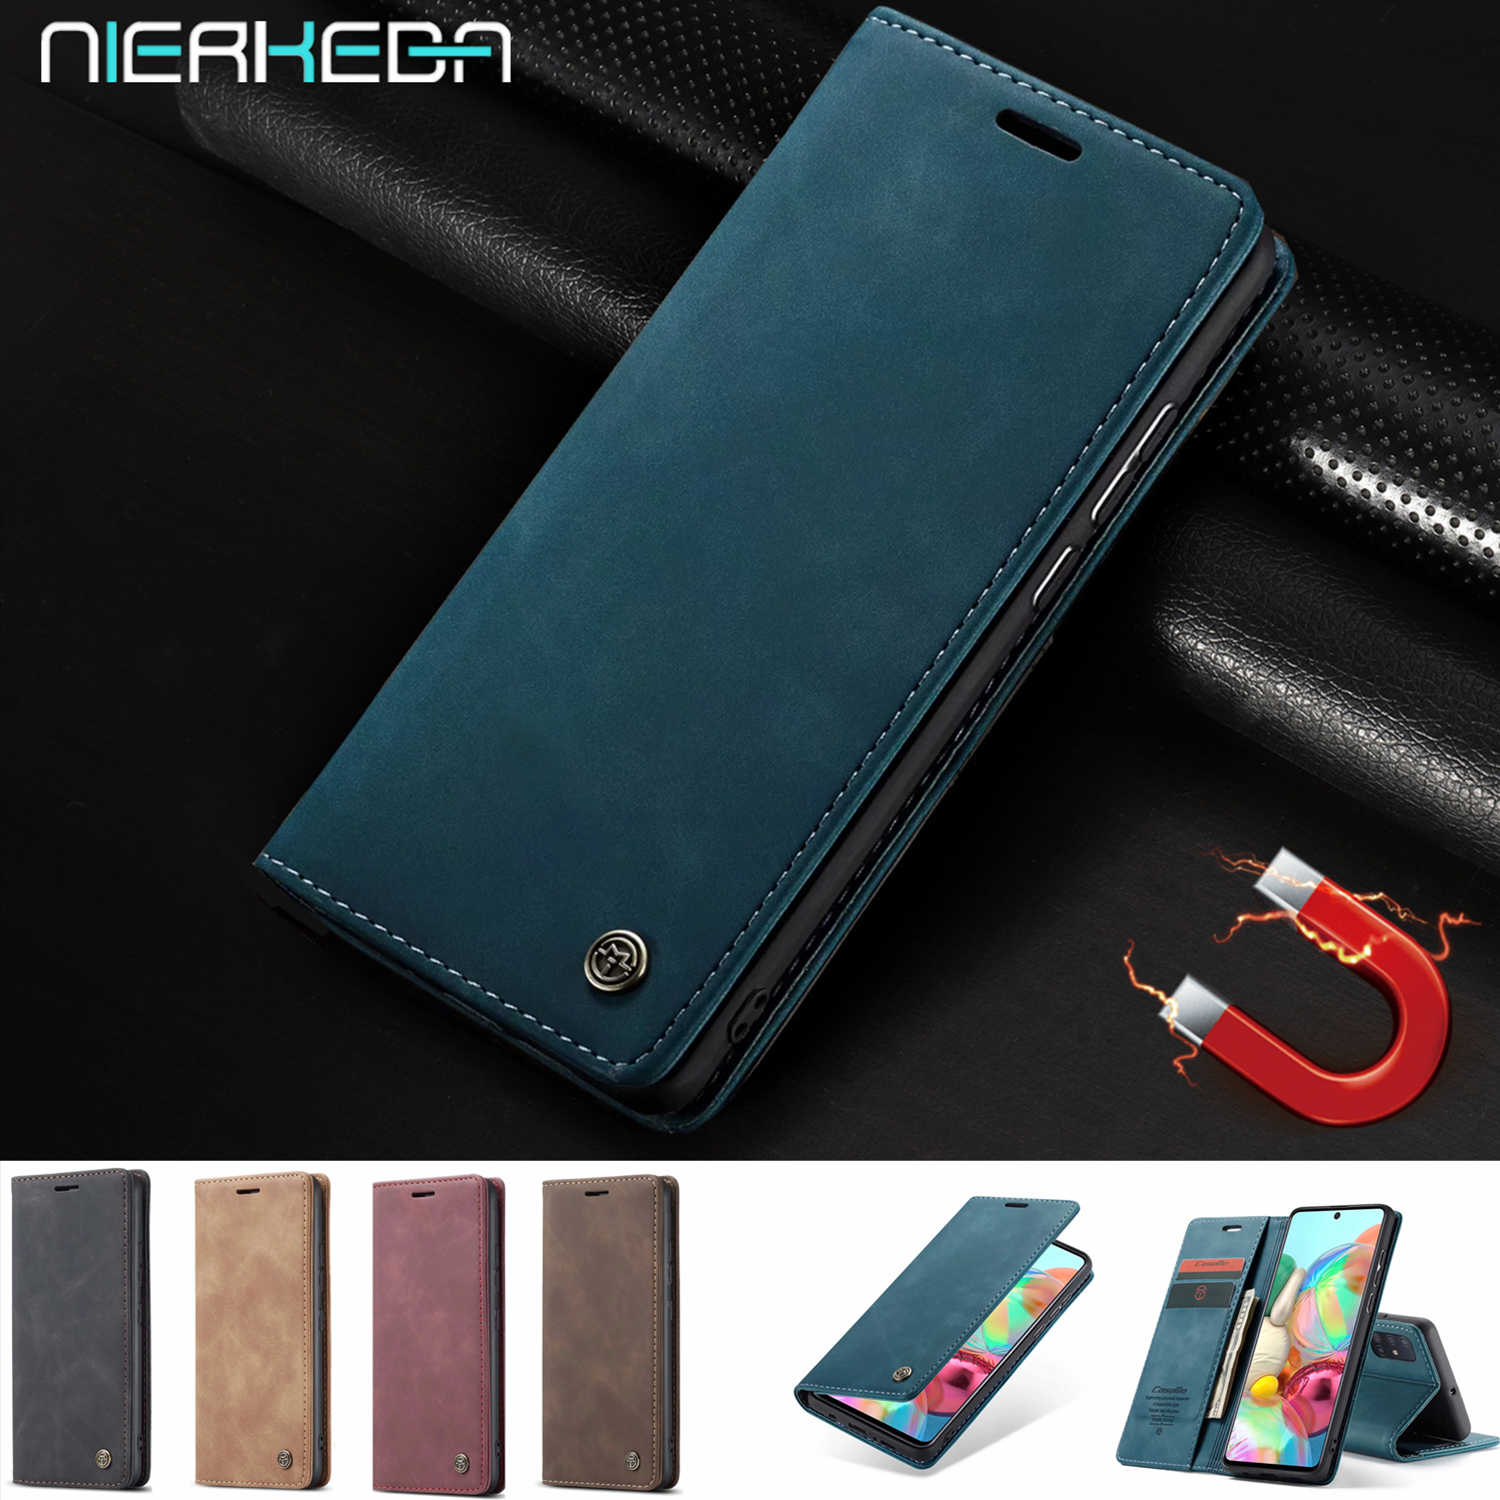 A71 Flip Leather Case Voor Samsung A51 A81 A91 A50 A70 A30 S A40 A20 A10 S20 Ultra S10 S9 s8 Note10 Plus 9 Lite Card Wallet Cover